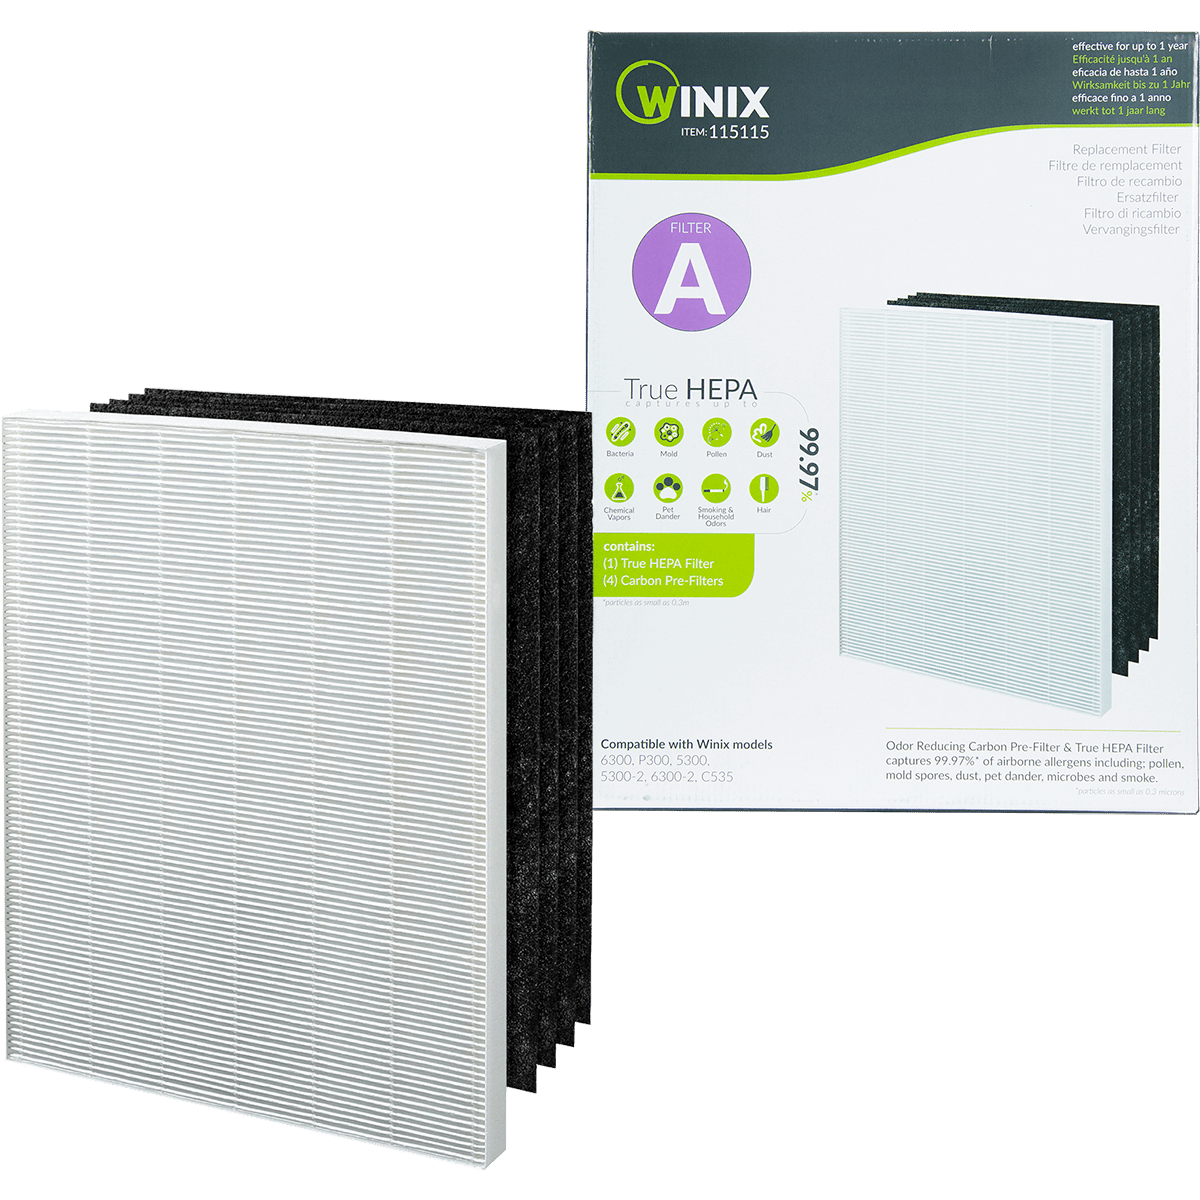 winix size 21 replacement filter set